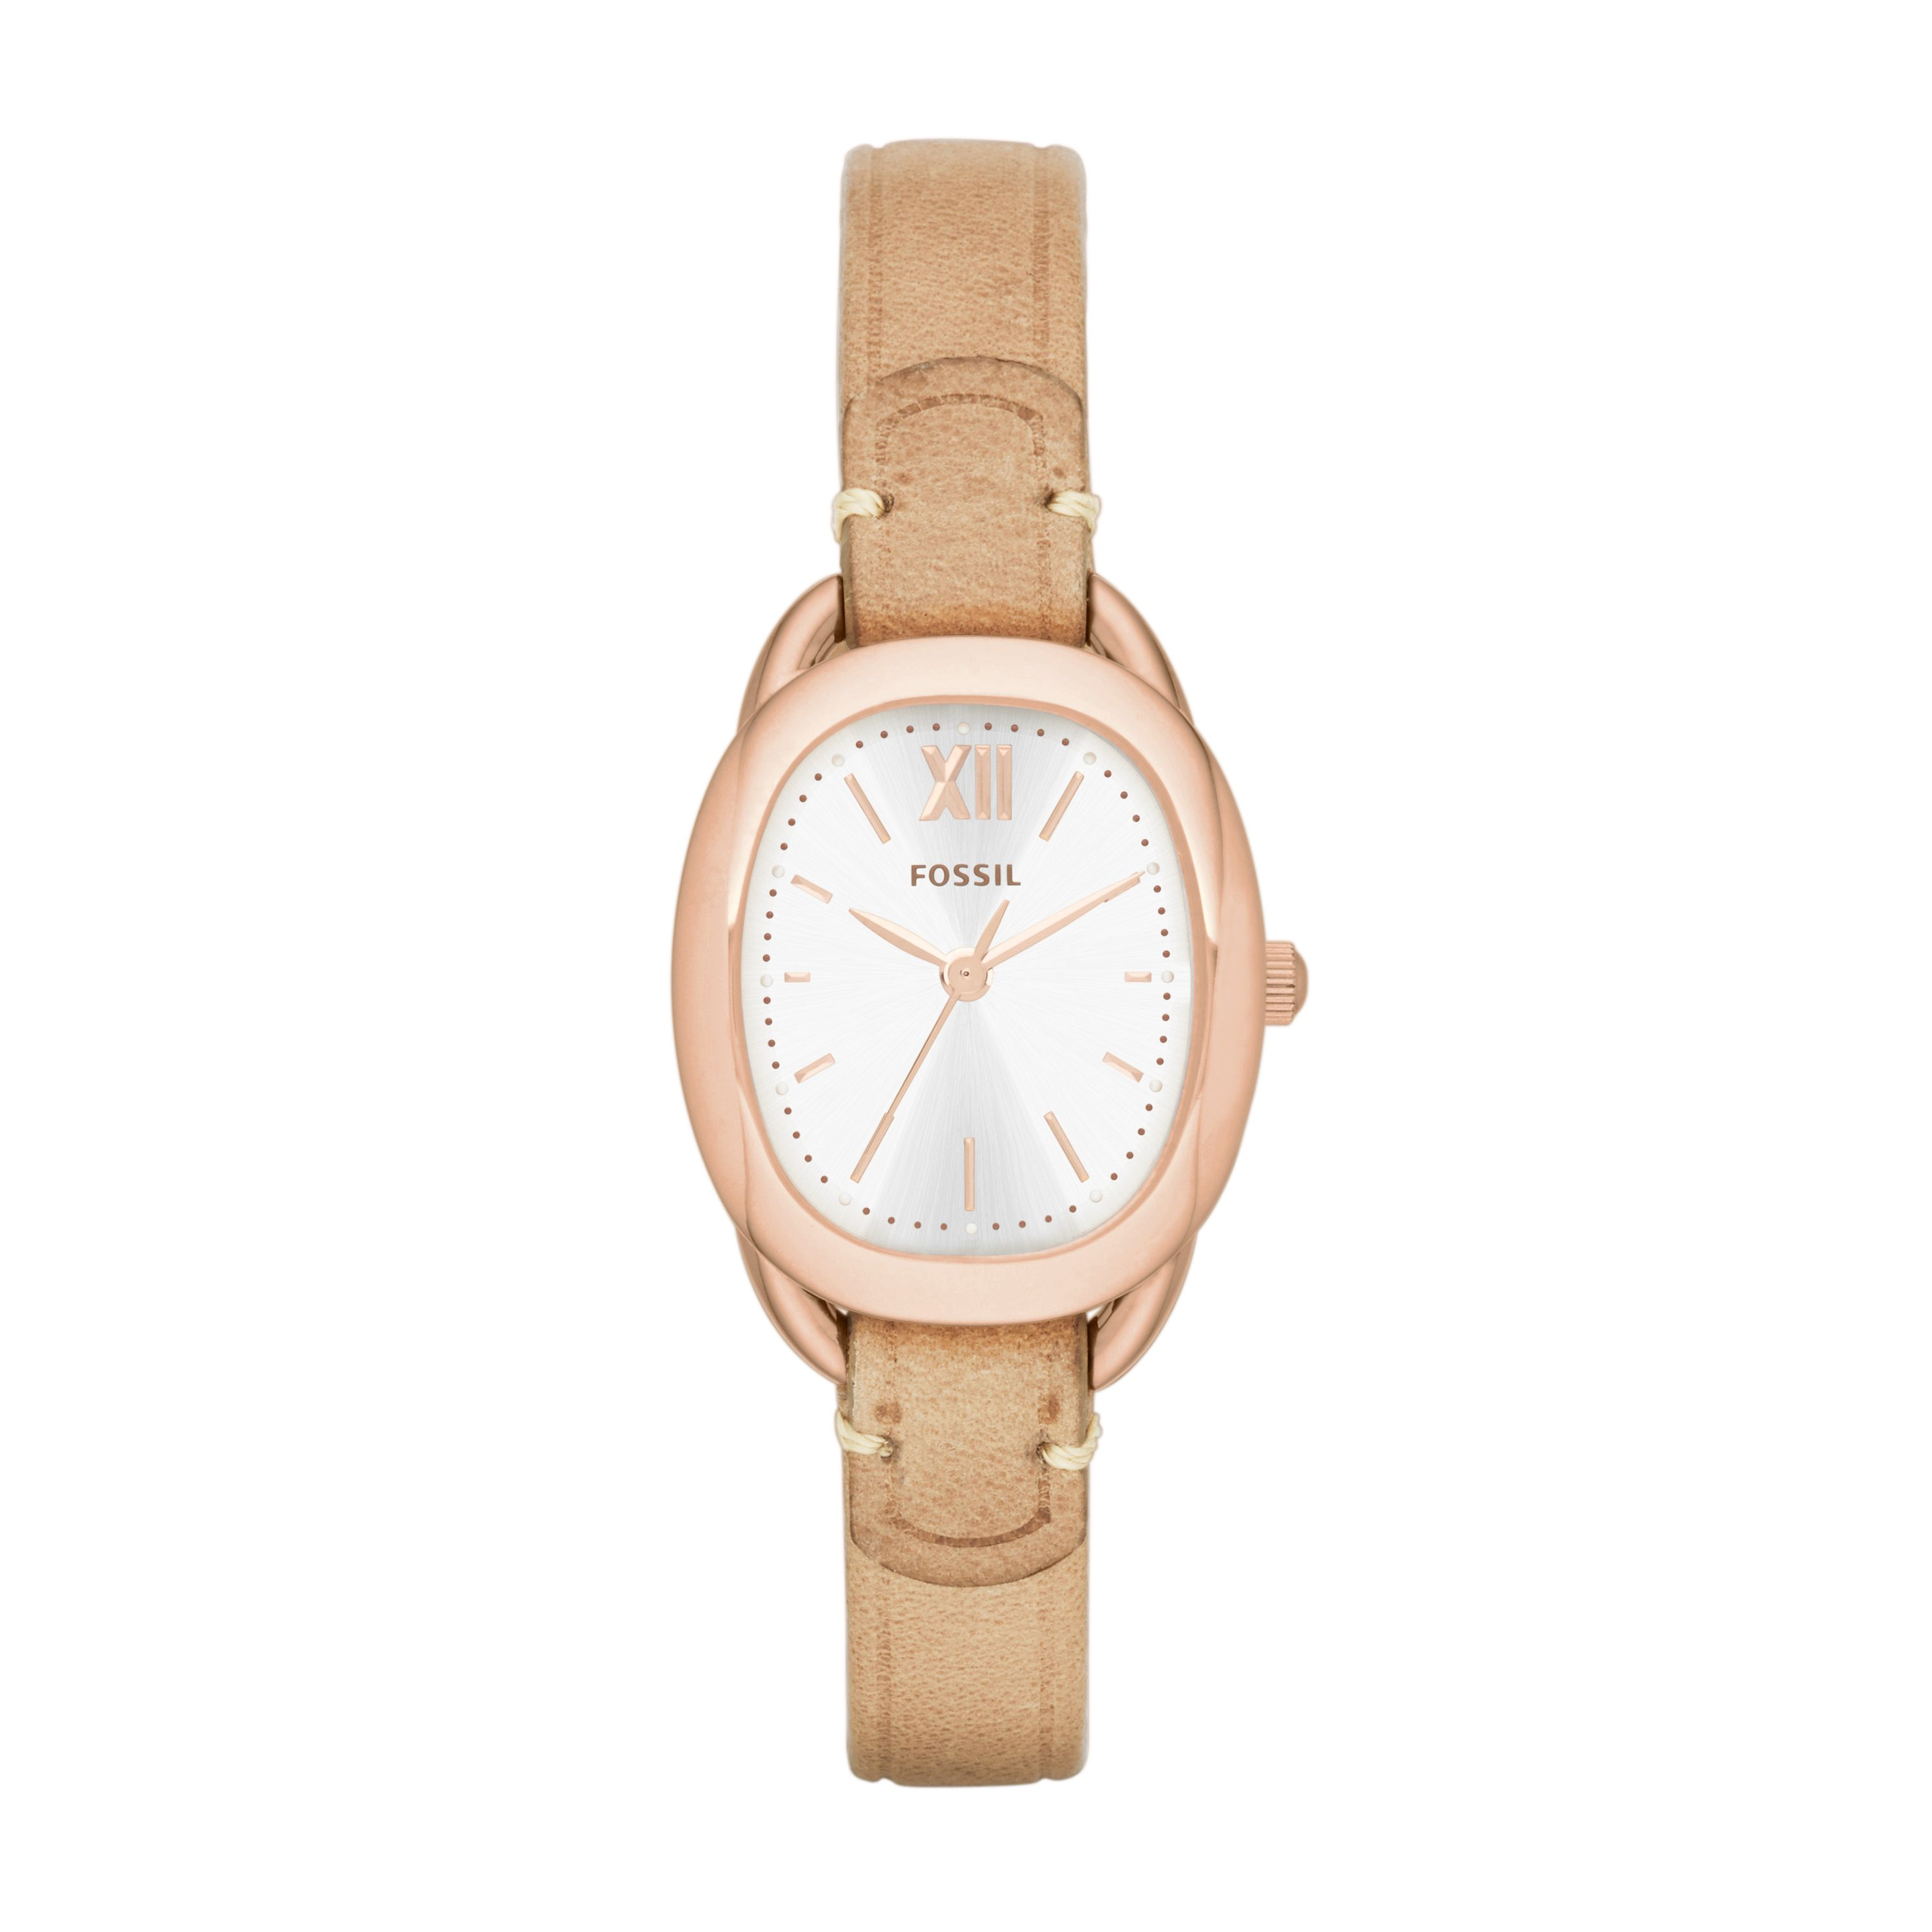 ES3514 Rose gold oval case vintage style watch